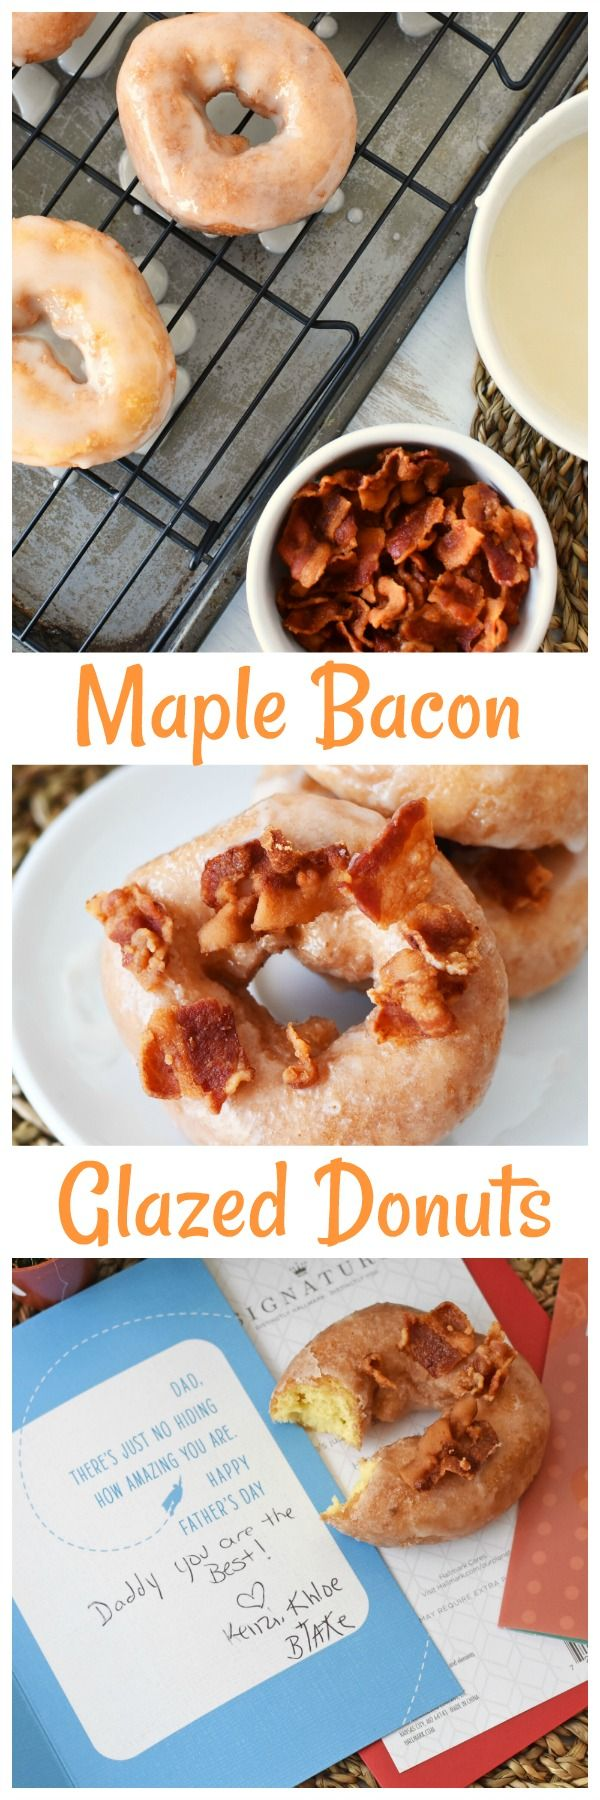 Short Cut Maple Bacon Donuts & An Early Father's Day- Want to make dad some amazing donuts for Father's Day? Check out these 10 minute maple bacon glazed donuts! Plus get some Father's Day Card ideas from #HallmarkAtWalgreens #AD via @savvysavingcoup